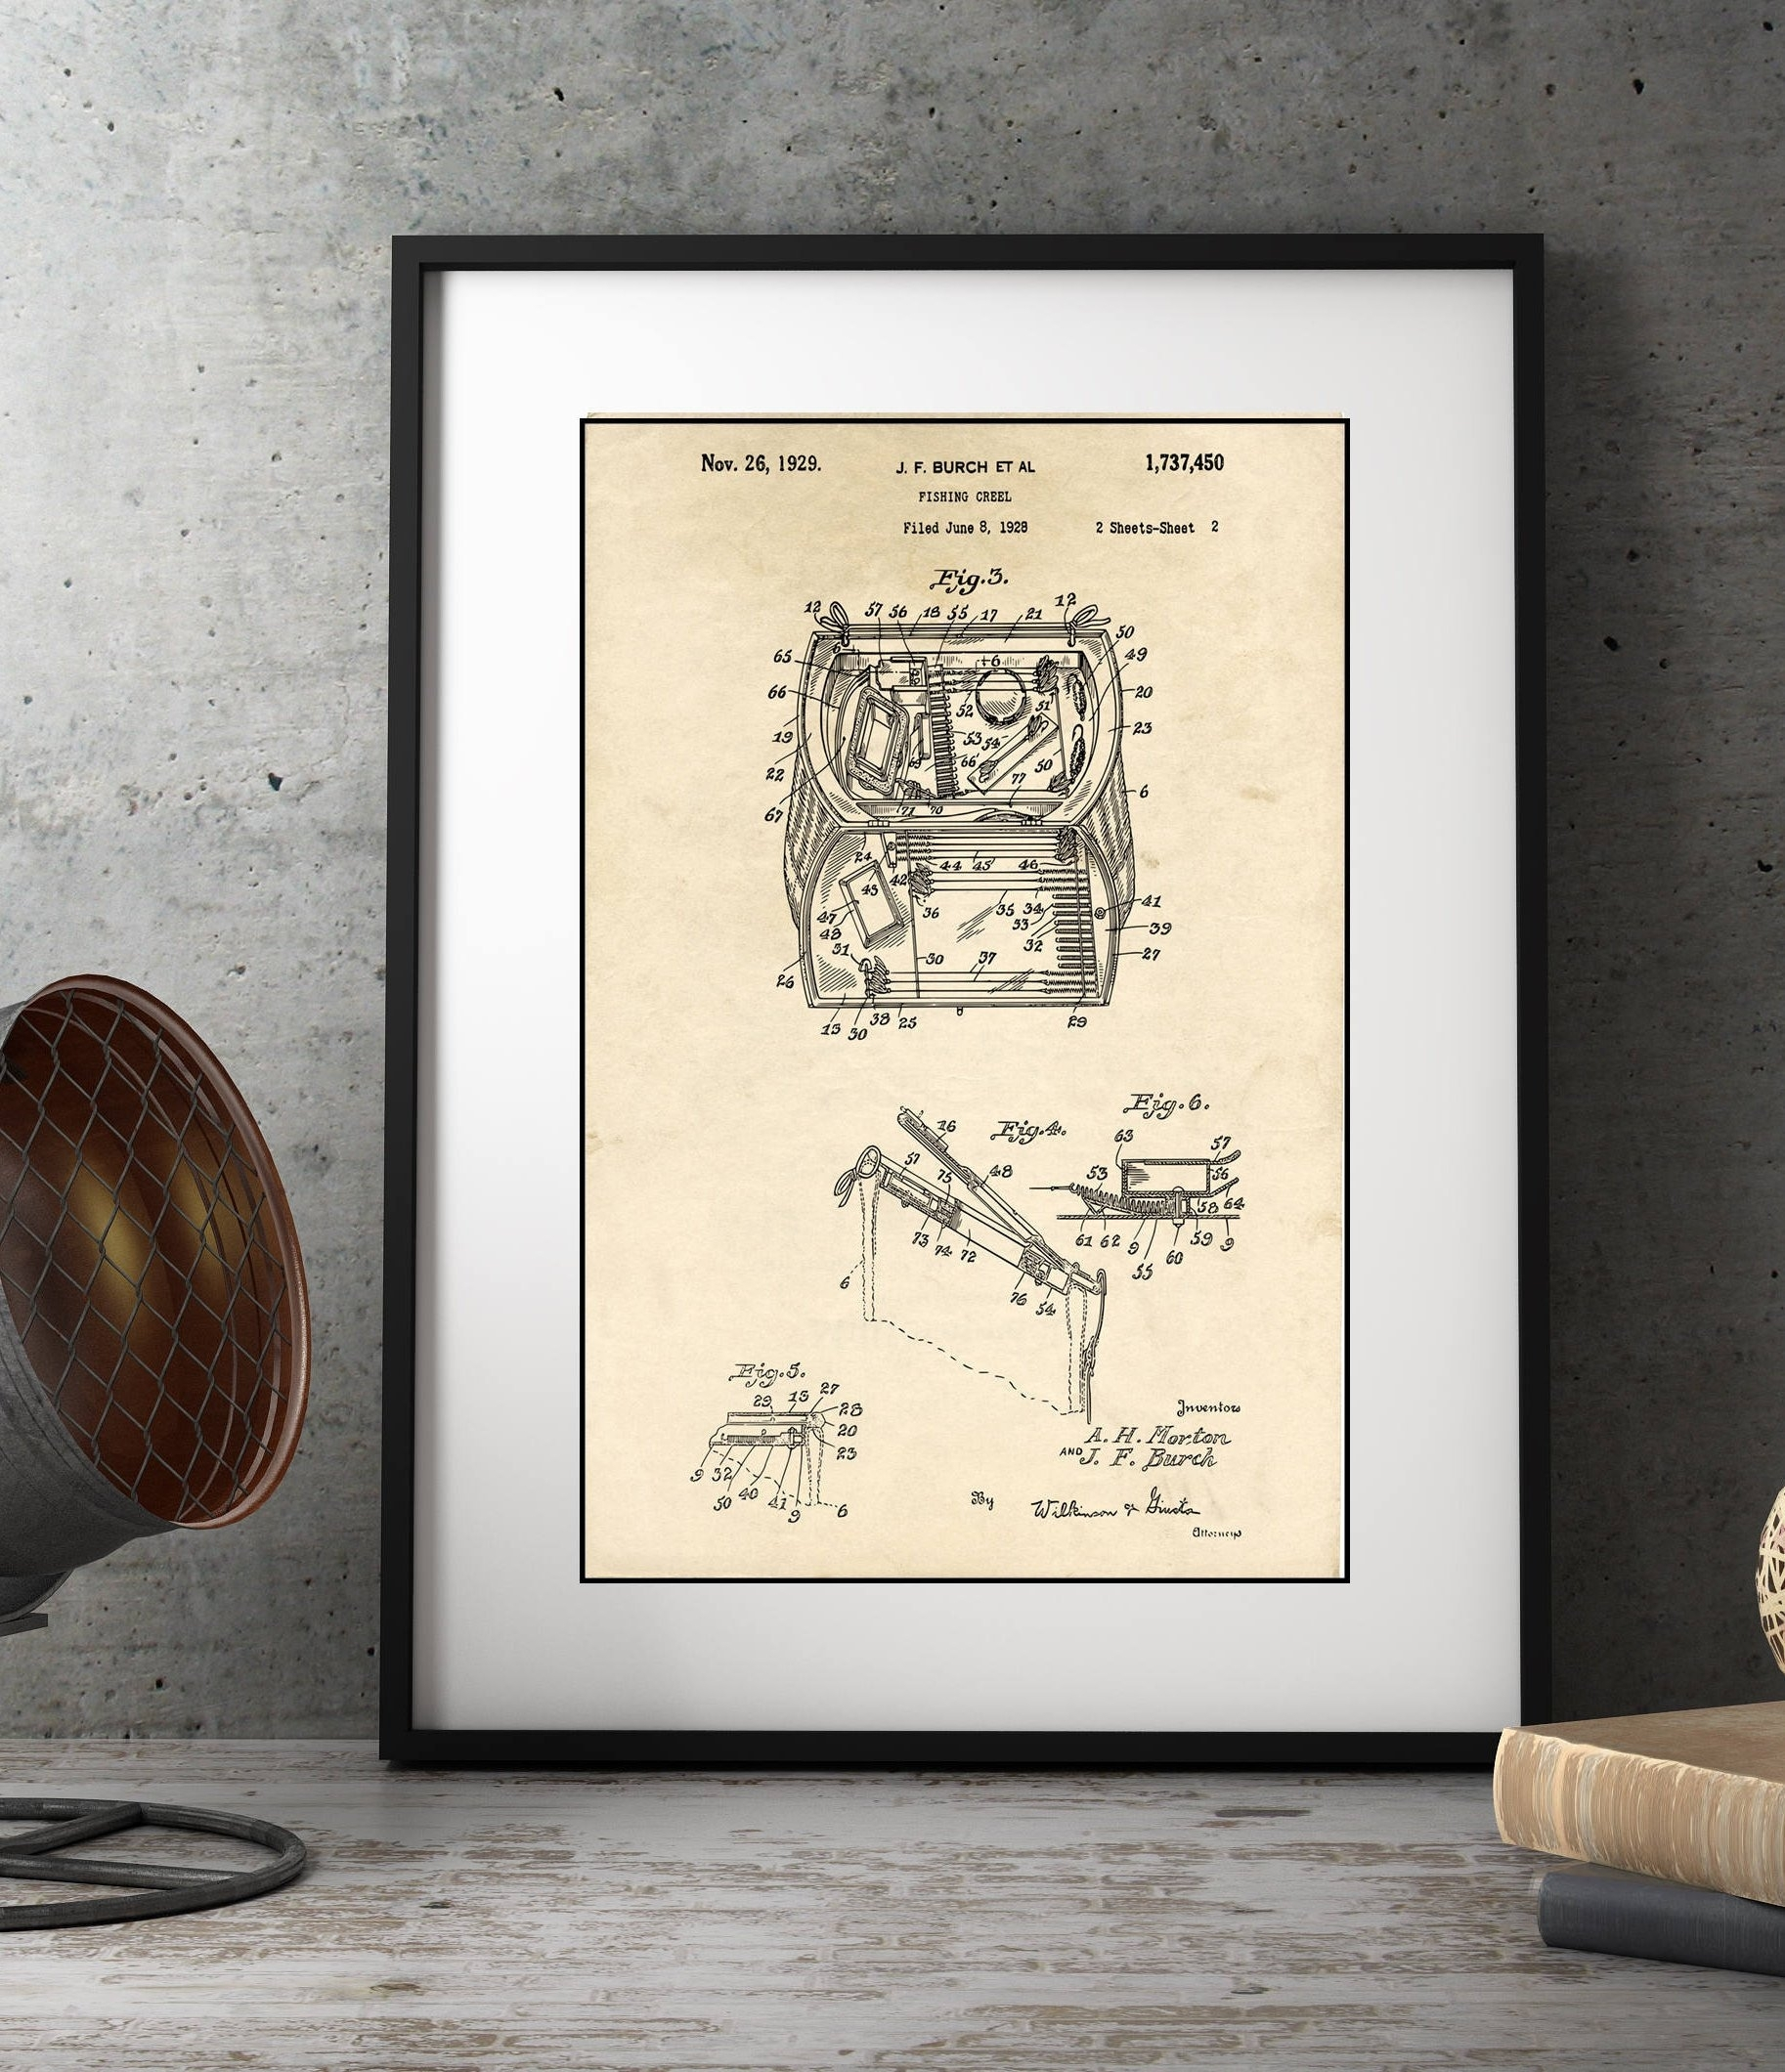 Lake House Decor, Fishing Creel Patent Illustration, Farmhouse Decor Inside Latest Lake House Wall Art (View 6 of 15)